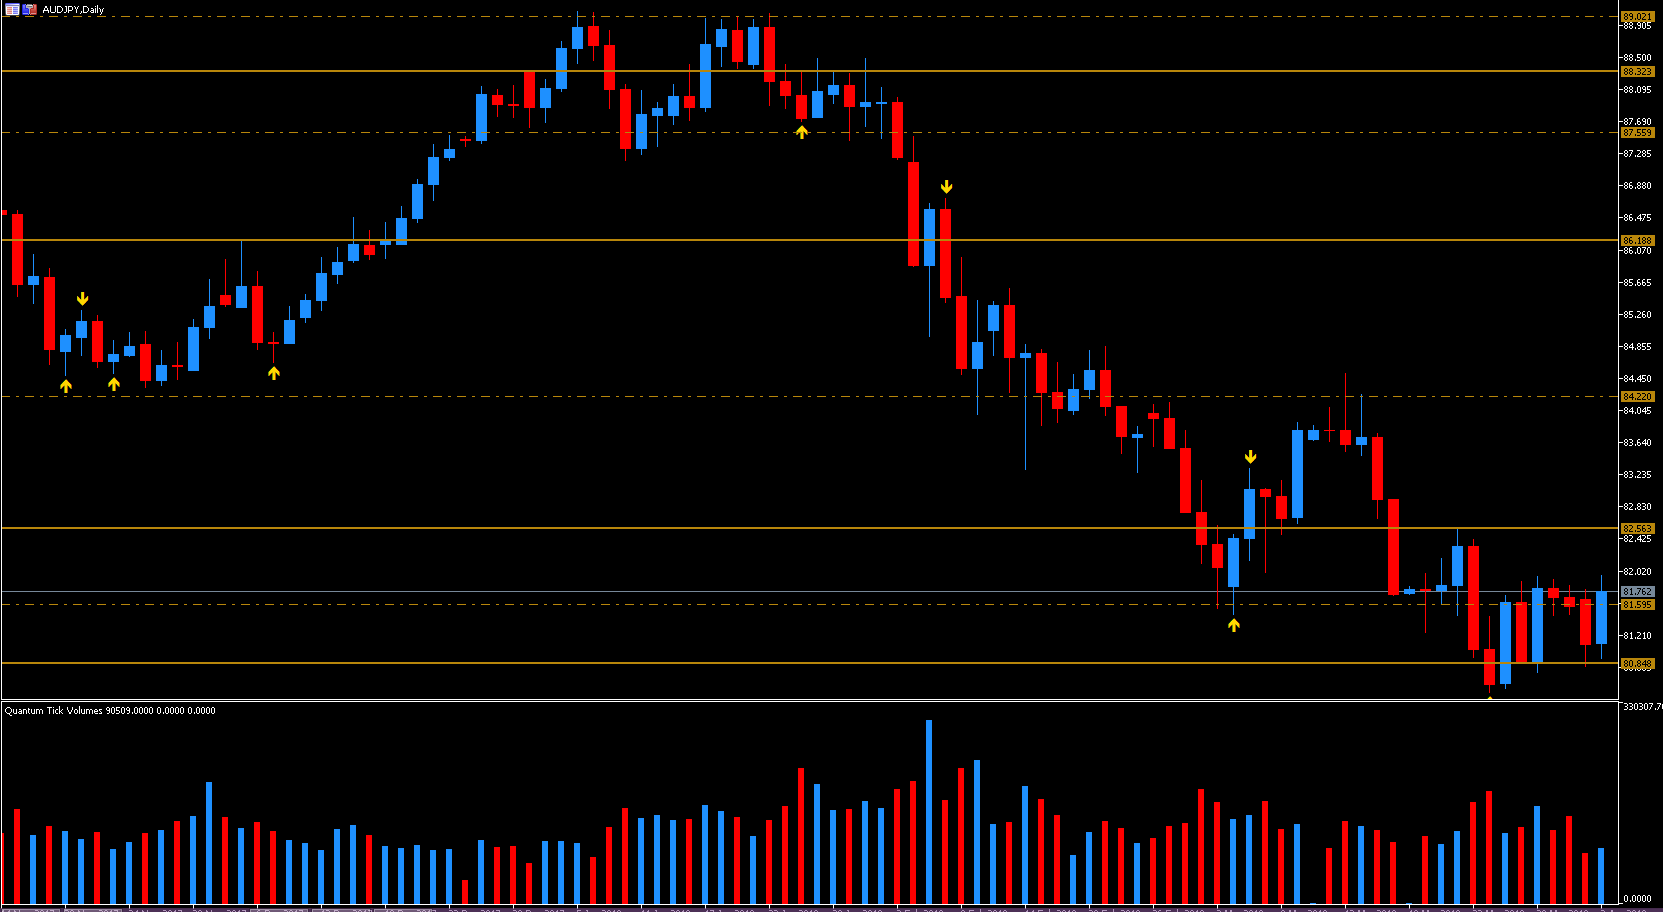 Daily AUD/JPY